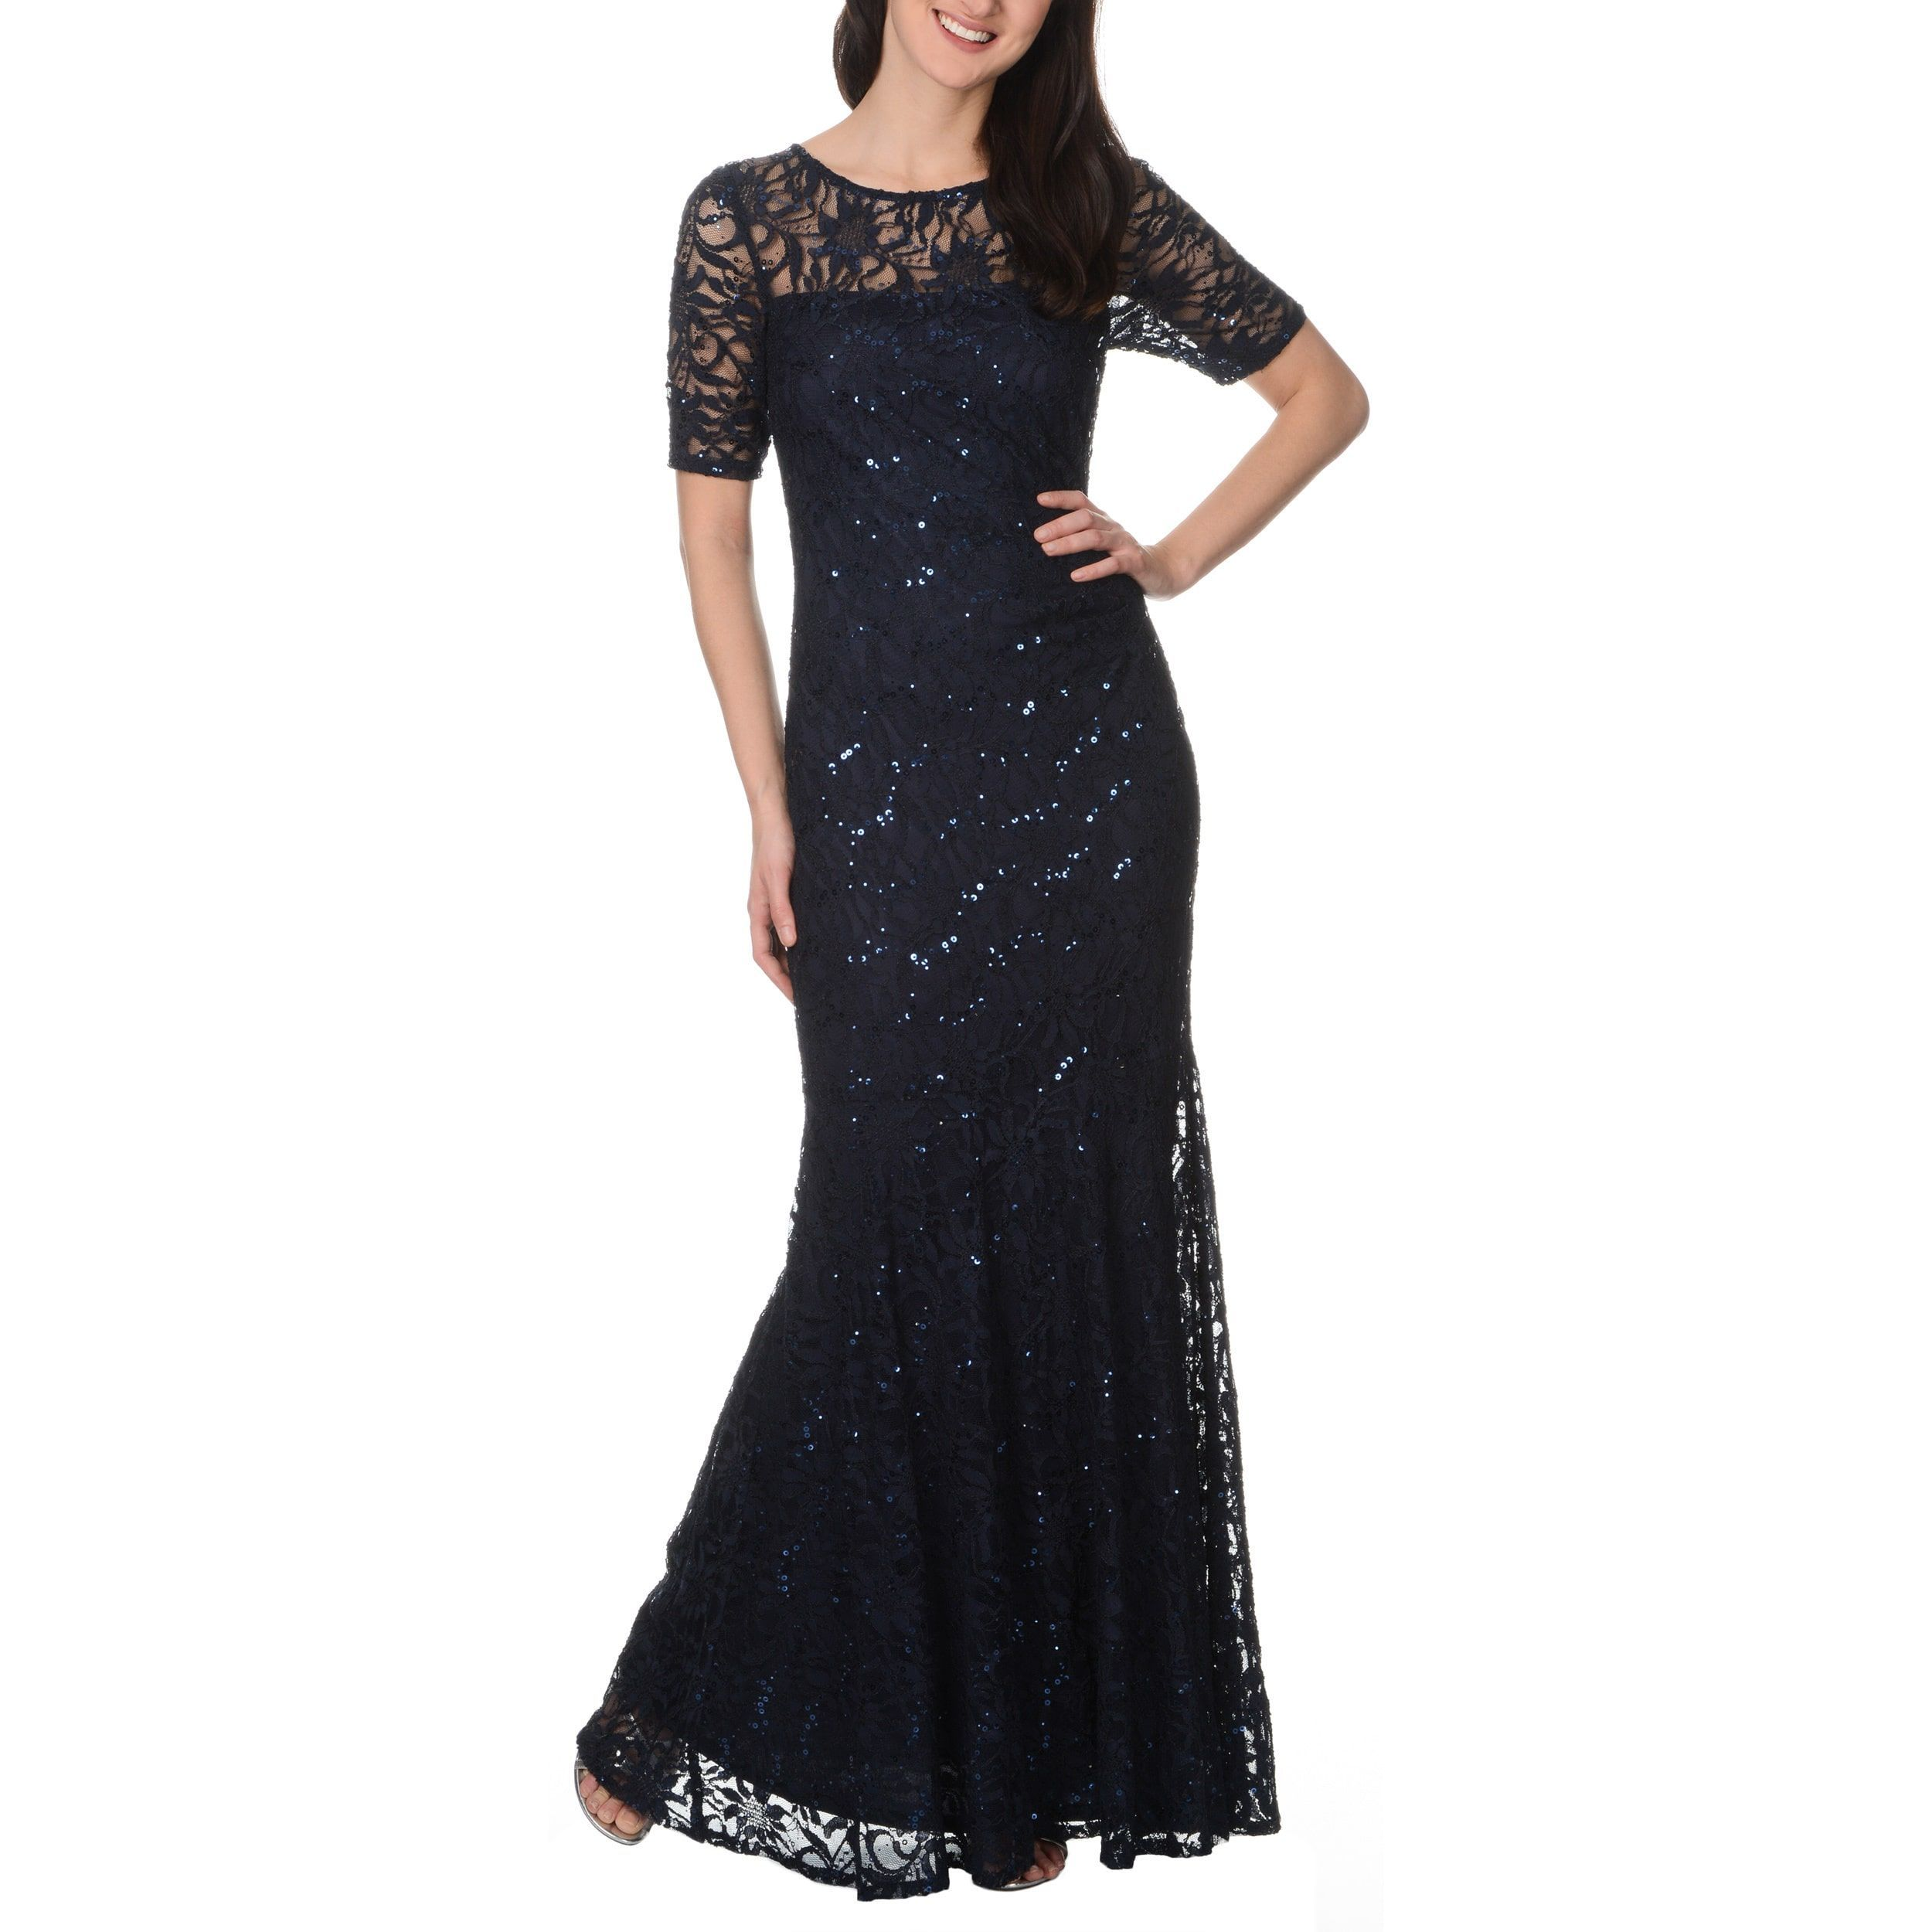 197df22cc013 Decode 1.8 Form Fitting Glitter Stretch Lace Gown | Products ...